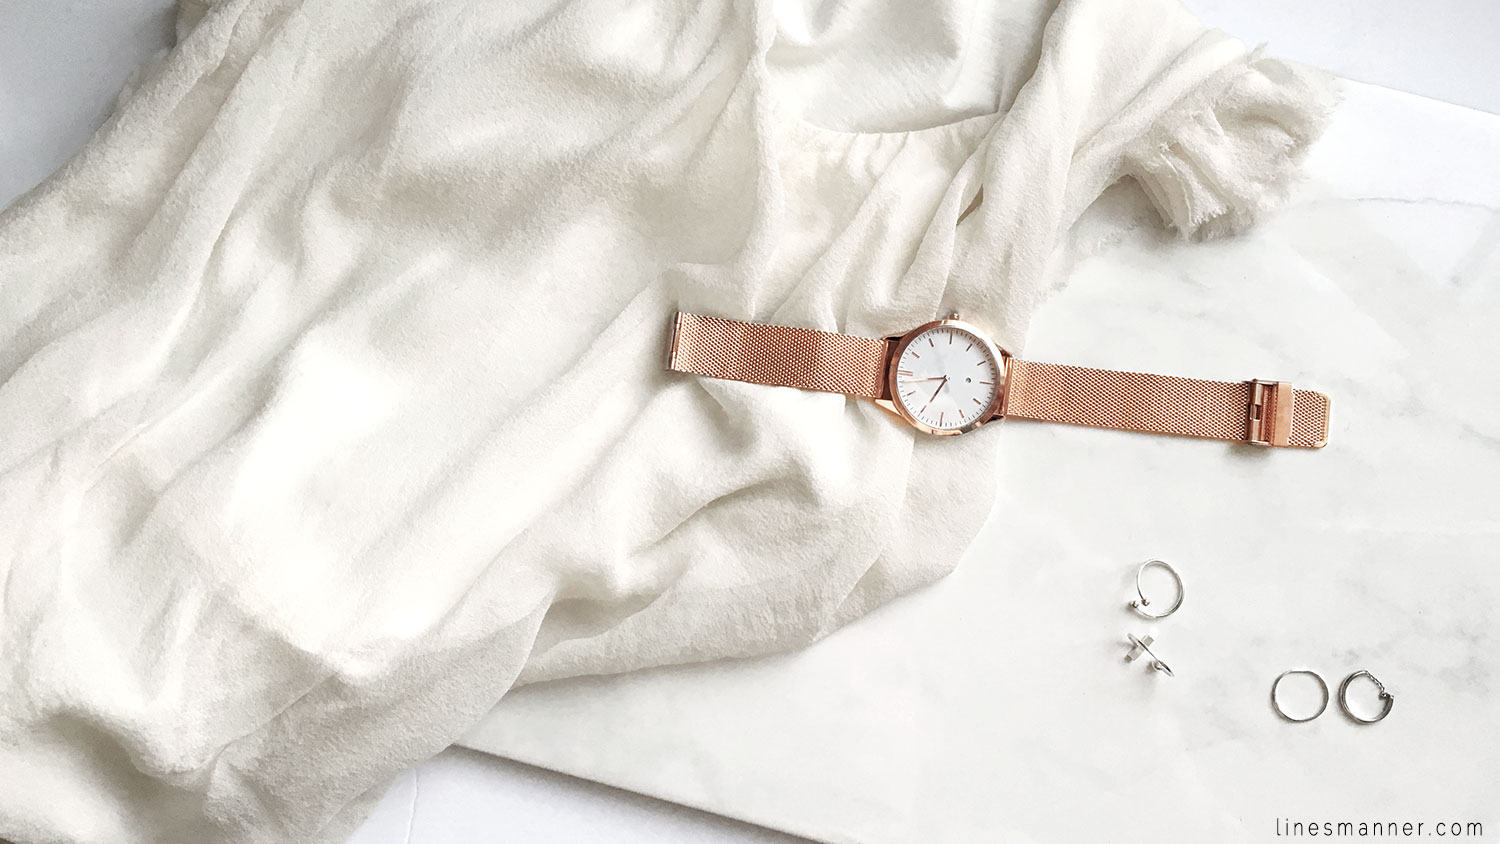 Lines-Manner-Rose_Gold-Under_The_Sun-Details-Essentials-Delicate-Minimal-Watch-Elegant-Effortless-1